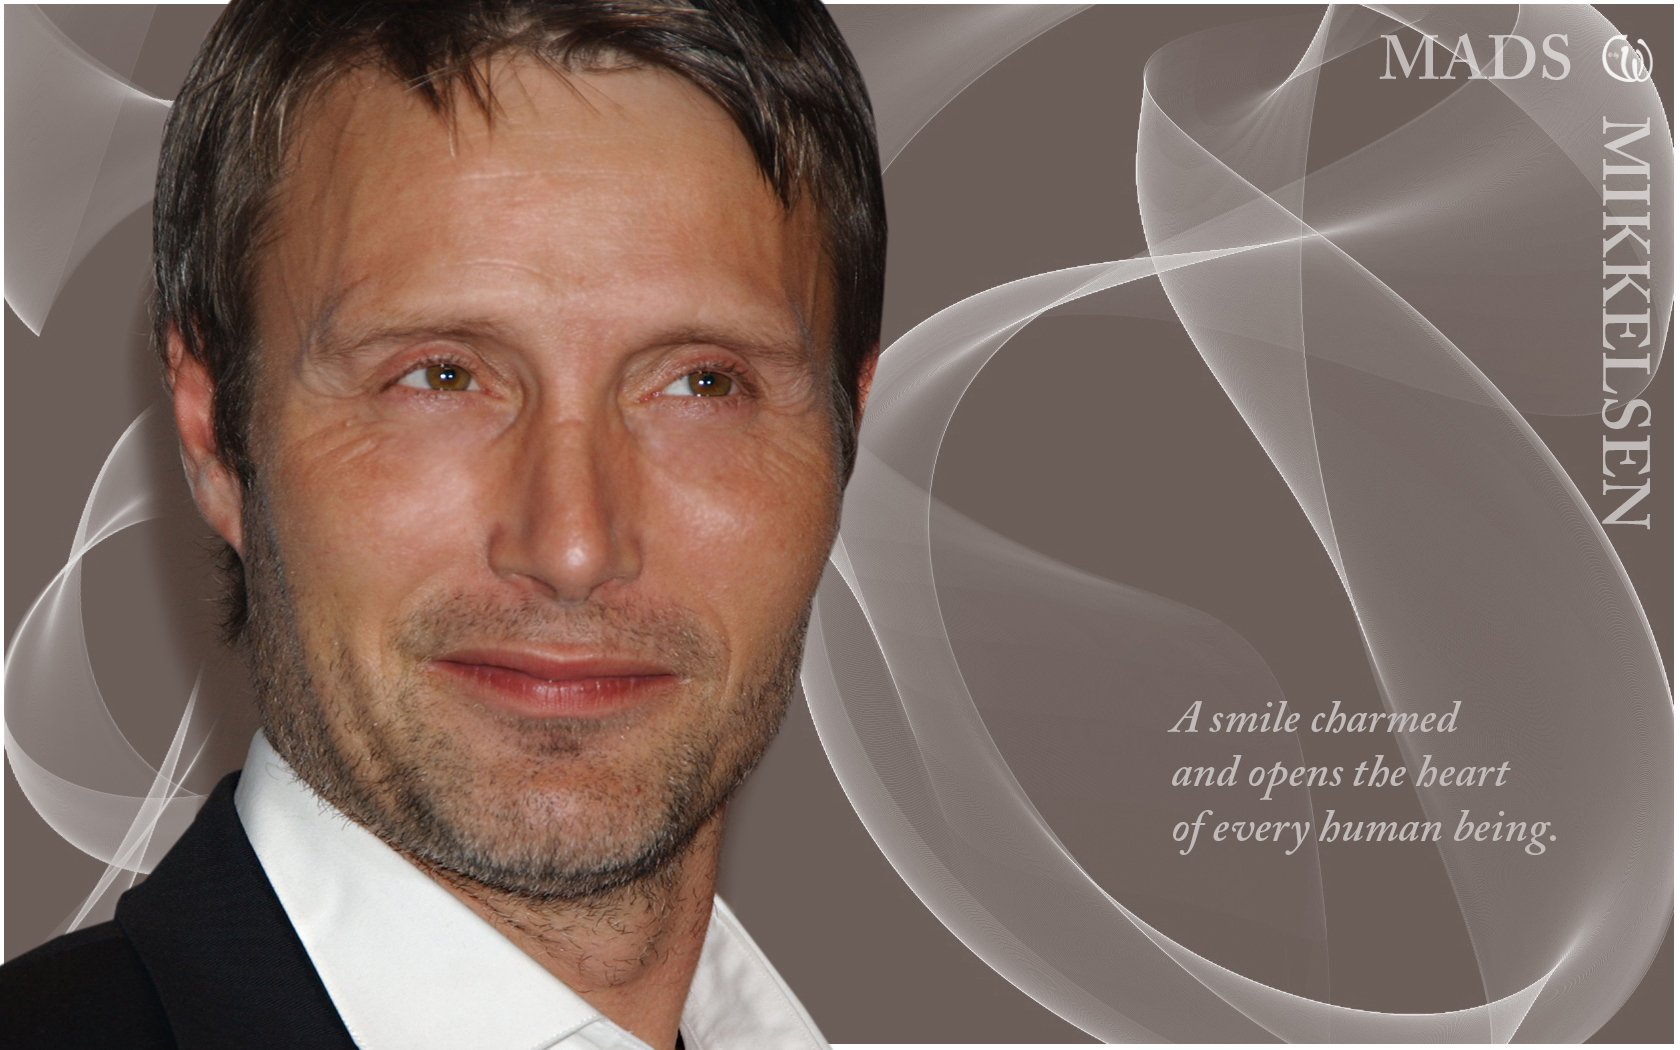 Mads Mikkelsen, Danishes And Actors On Pinterest